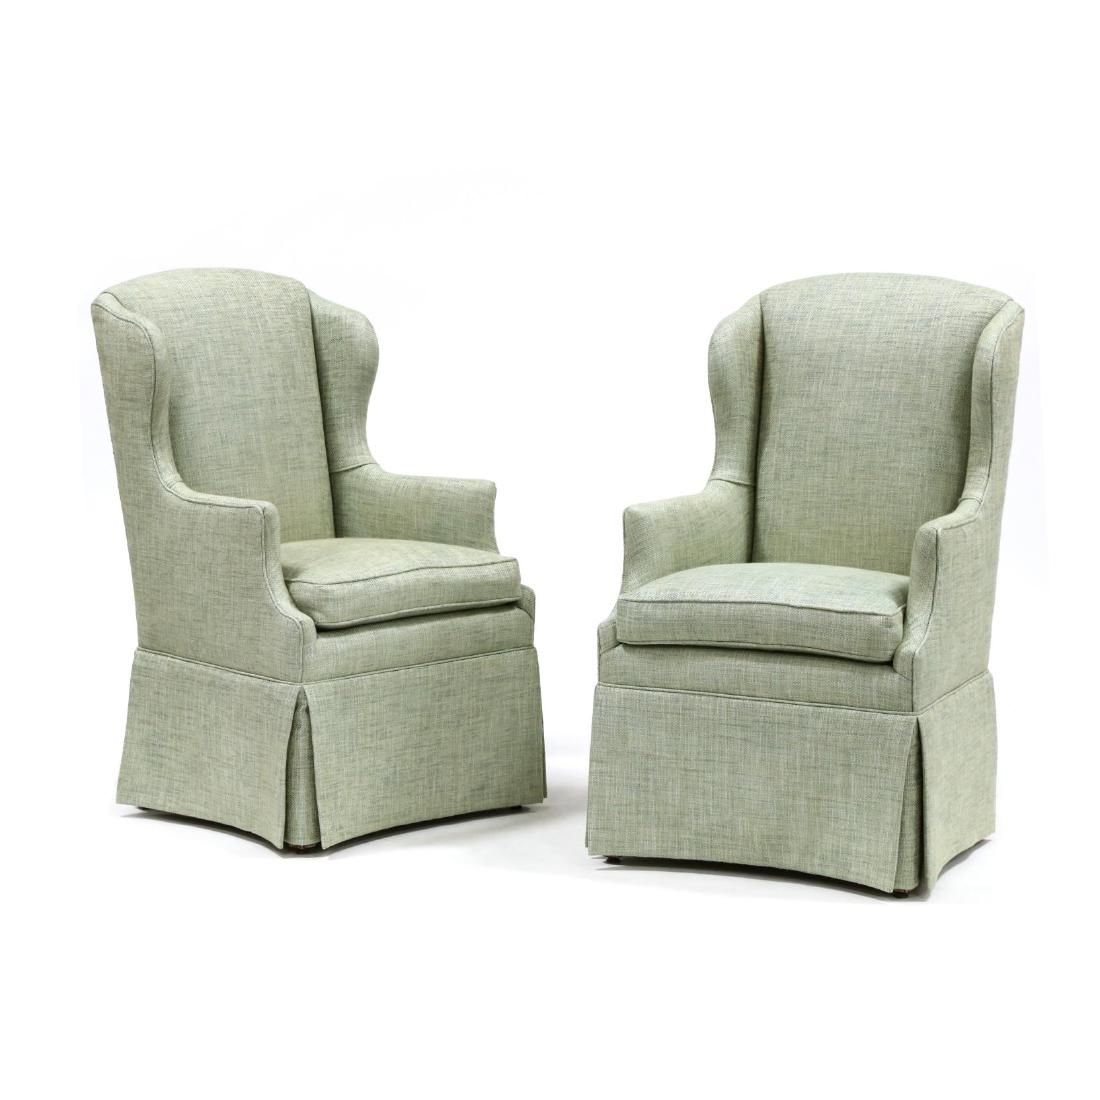 Pair of Chippendale Style Fireside Chairs